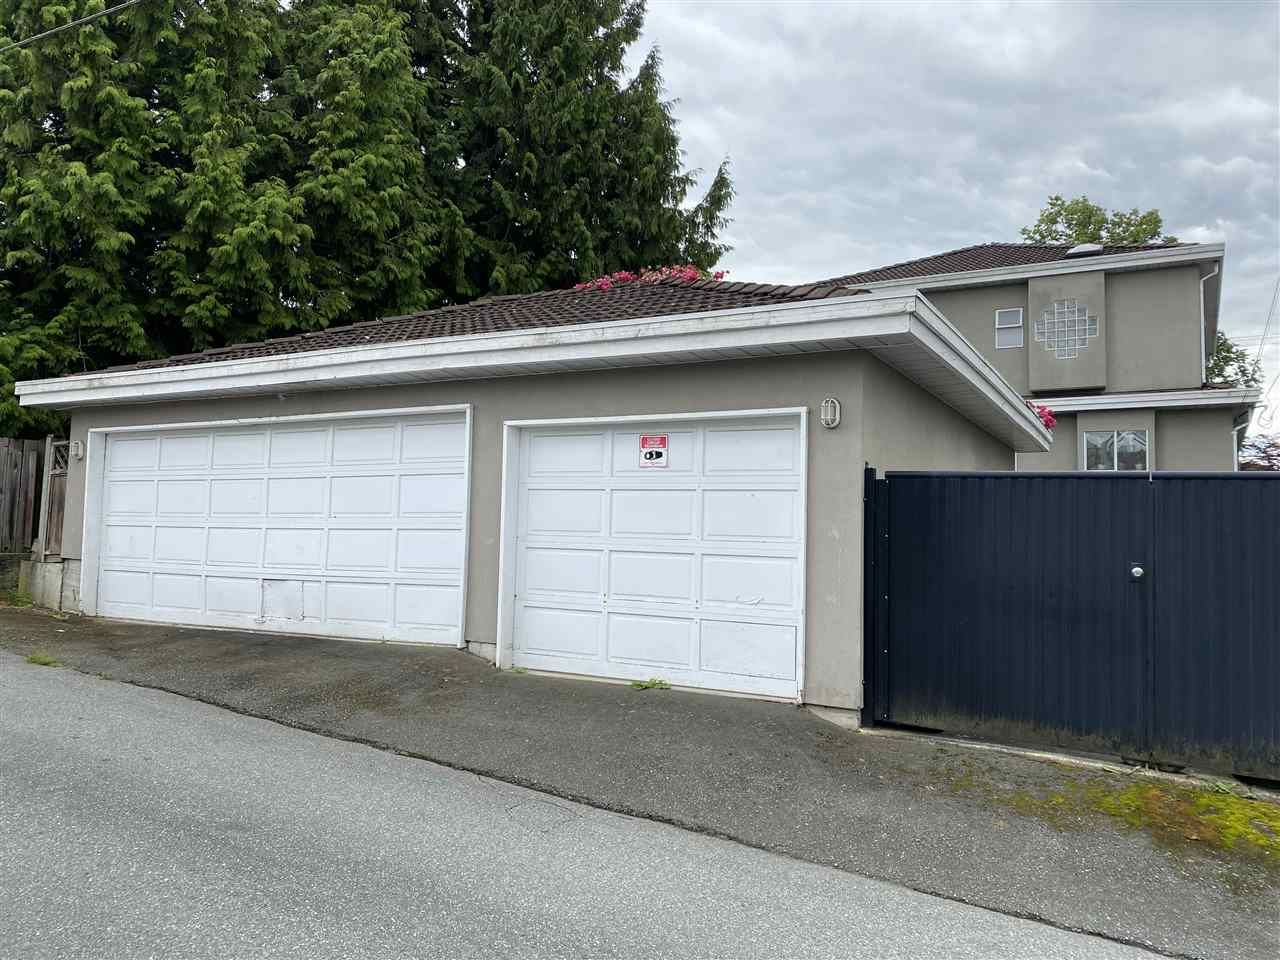 Main Photo: 2333 E 34TH Avenue in Vancouver: Collingwood VE House for sale (Vancouver East)  : MLS®# R2472705